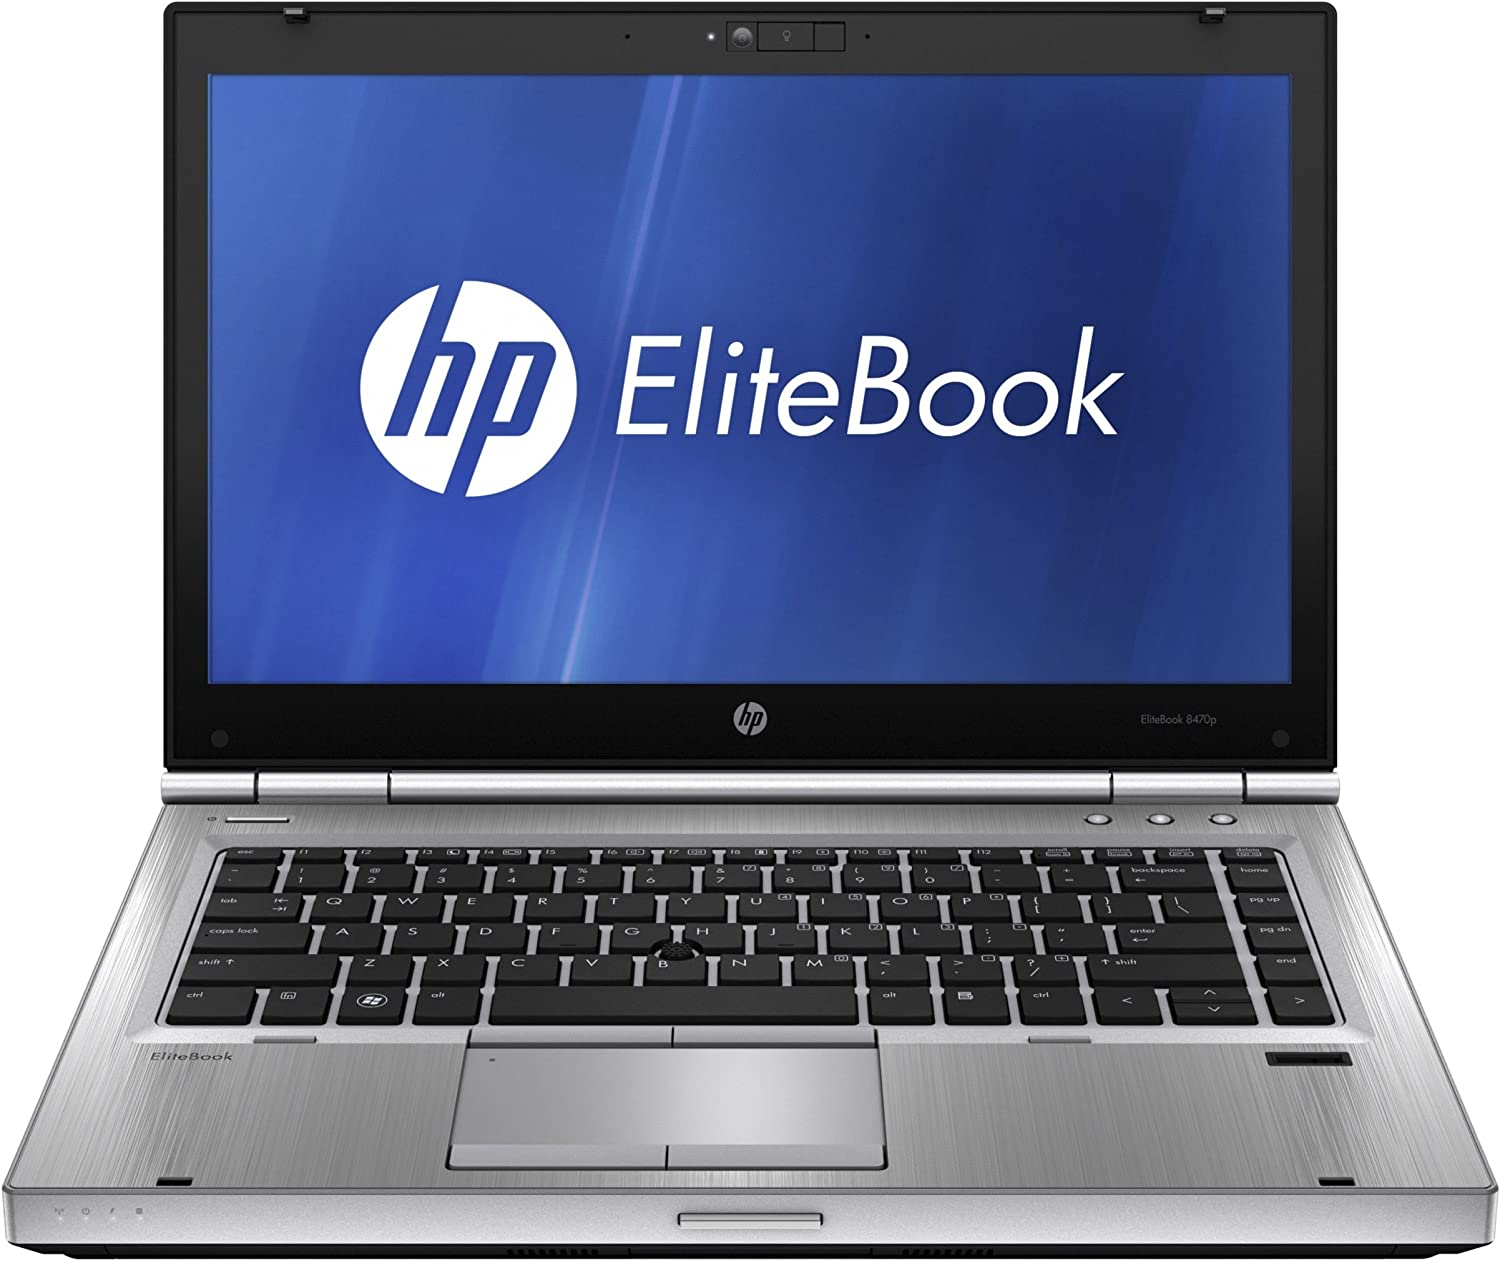 HP Elitebook 8470p, 3rd Gen Intel Core i5 3320, 2.6GHz, 8GB, 320GB HDD, DVD, 14in, Windows 10 Pro 64(Renewed)